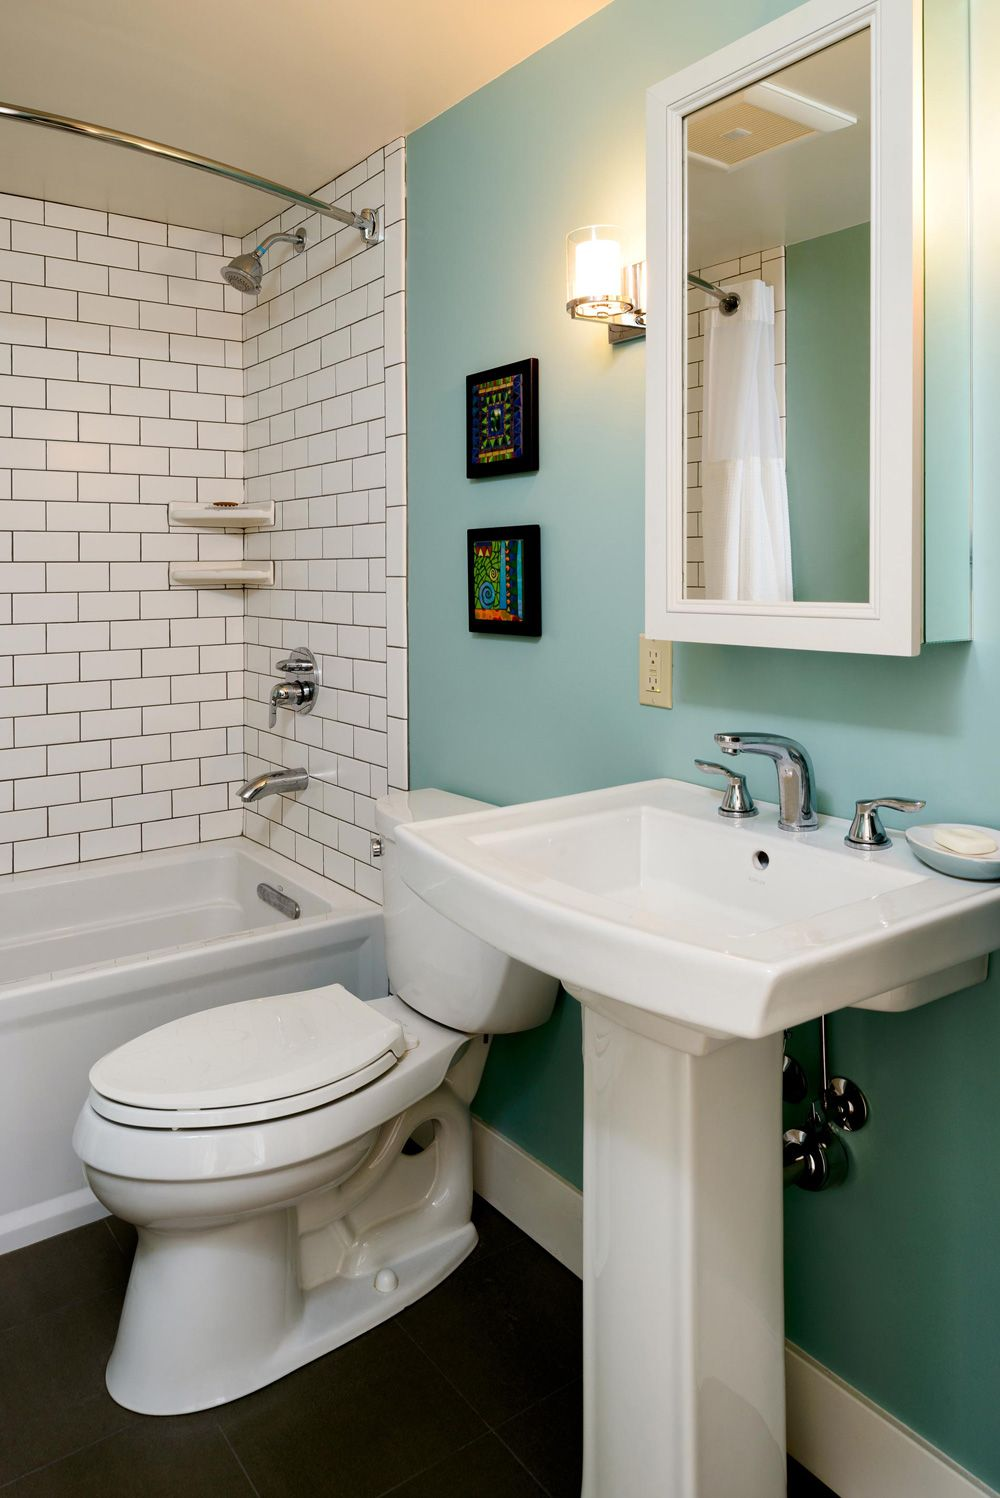 When It Comes To Bathroom Layouts It Is Very Challenging For The